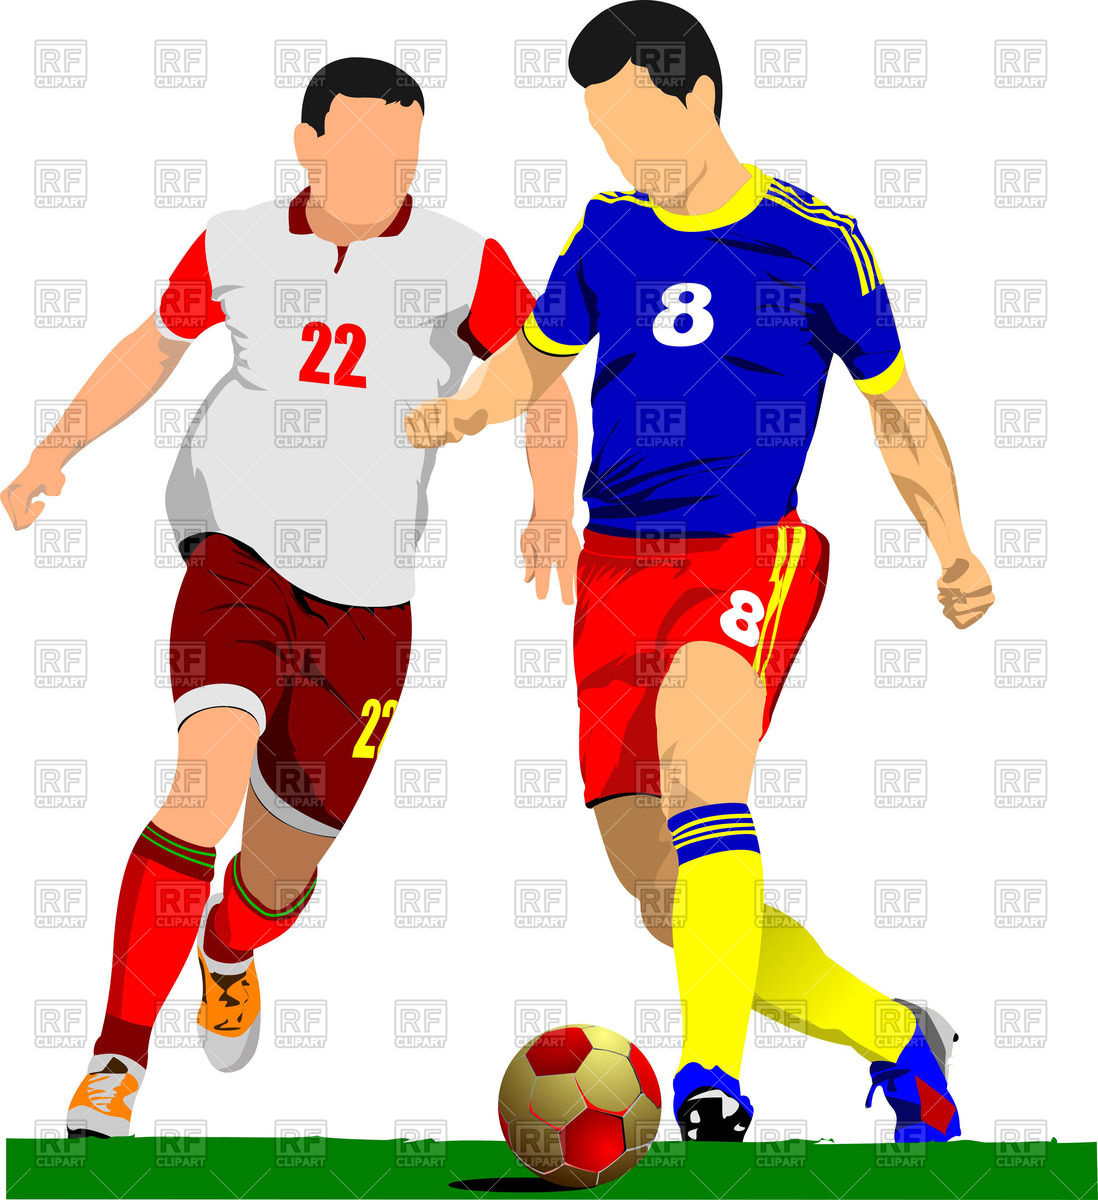 Football match clipart 20 free Cliparts | Download images ...